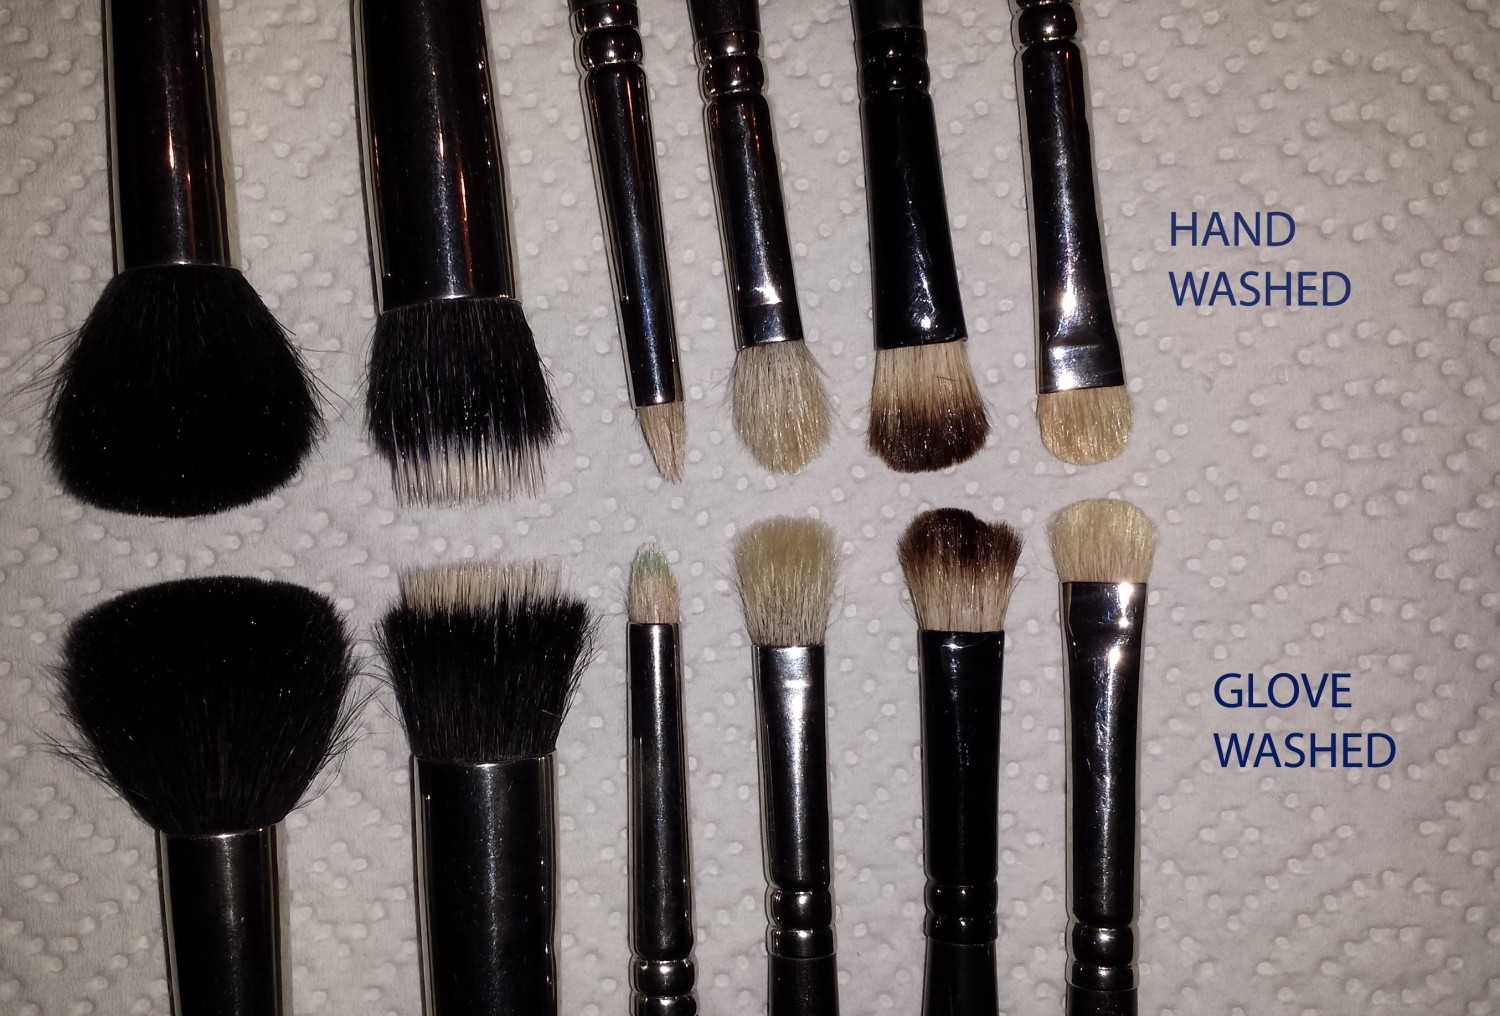 Brushes Cleaned